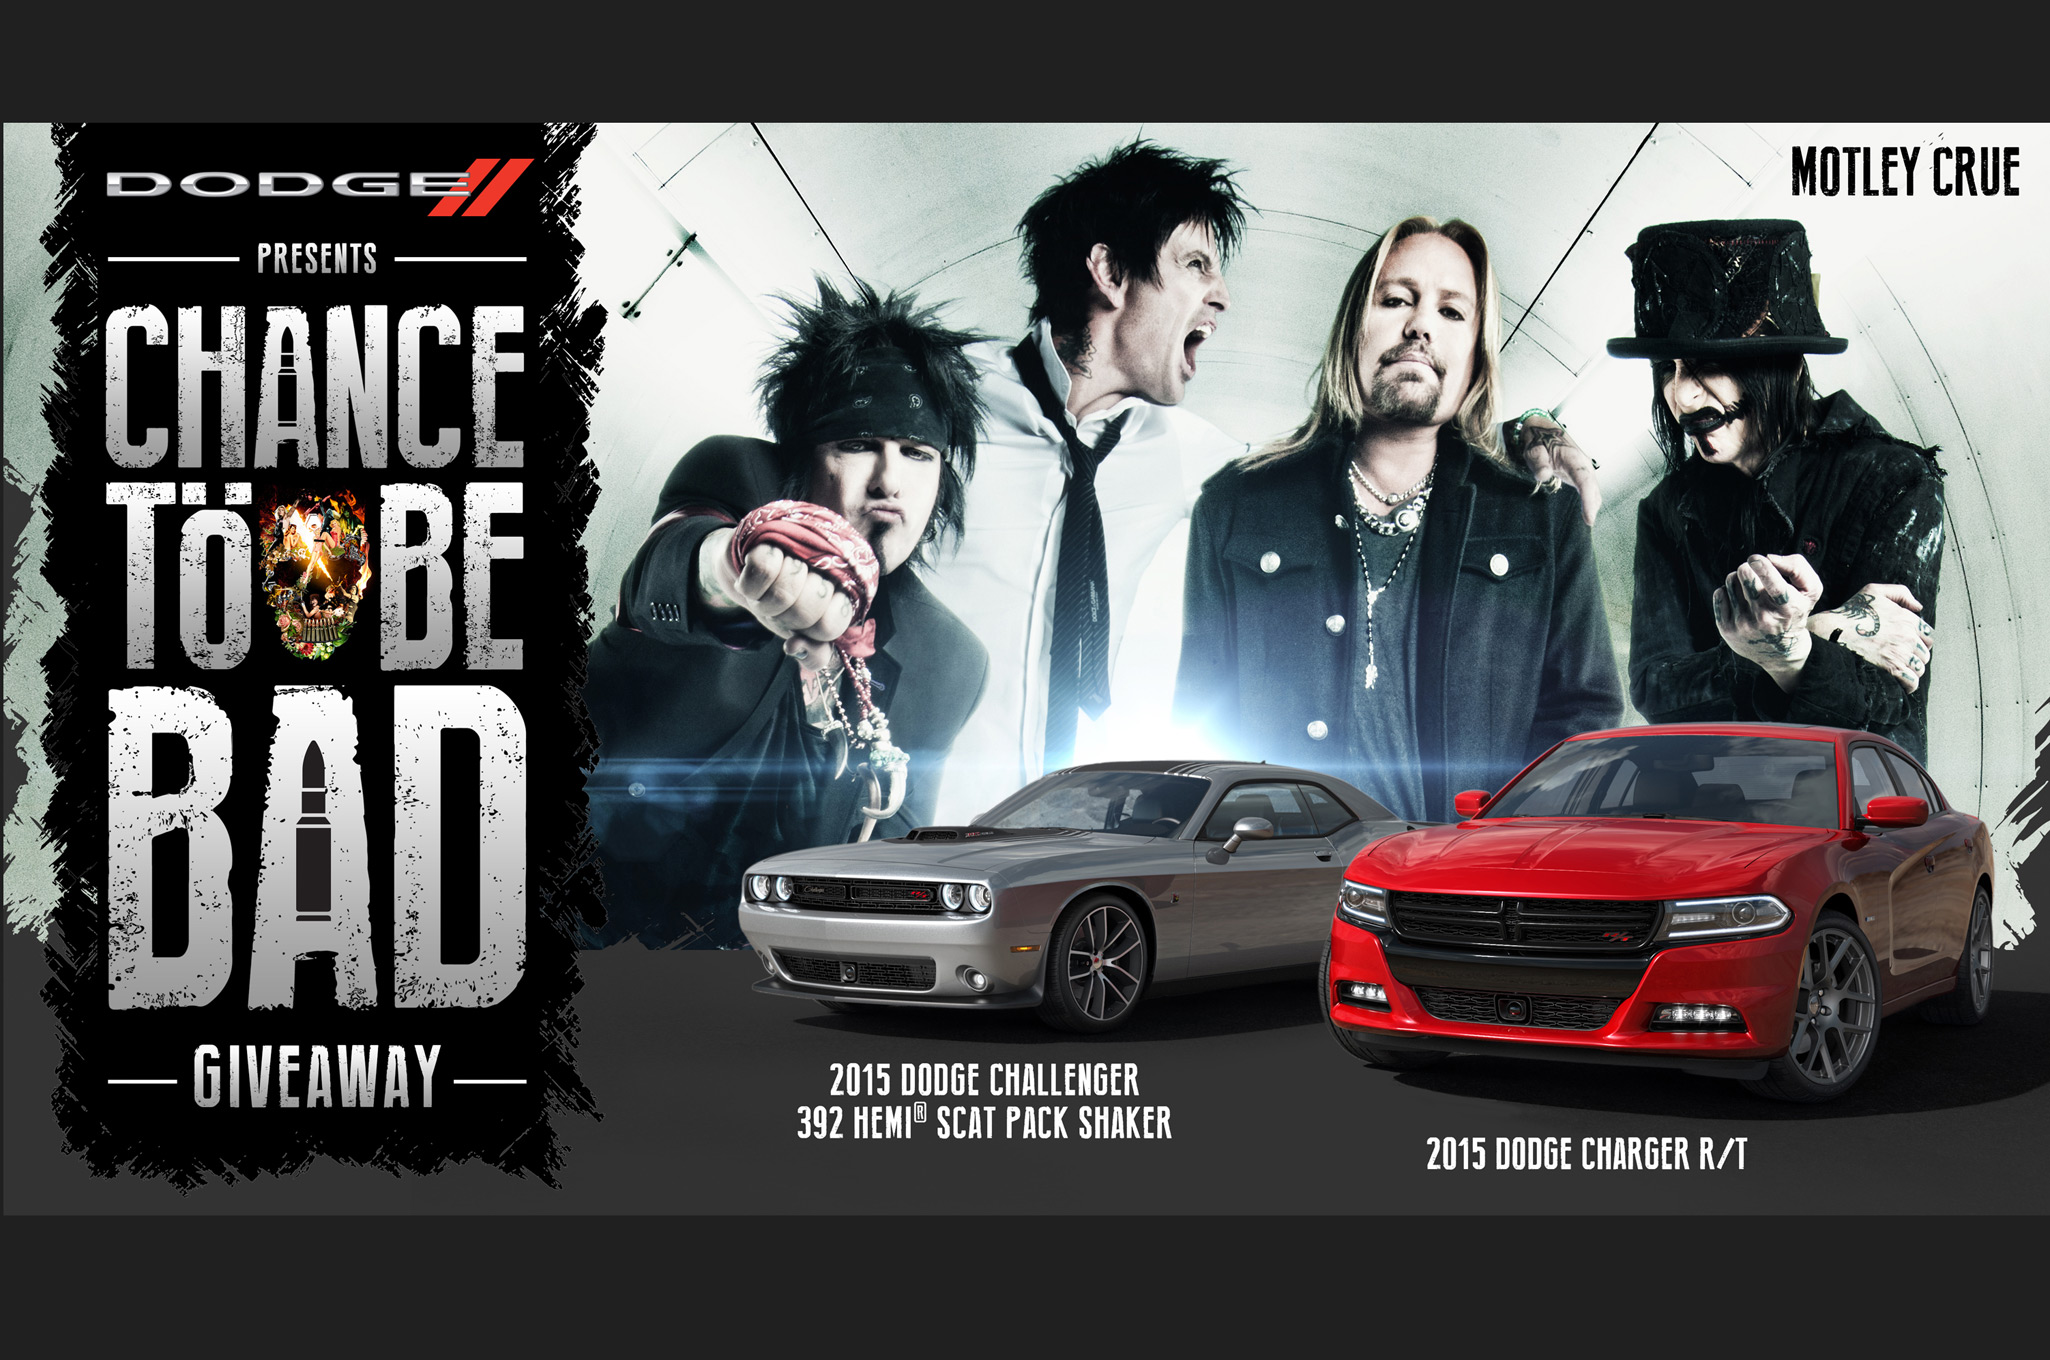 Dodge Charger, Challenger and Motley Crue Pair up for Contest